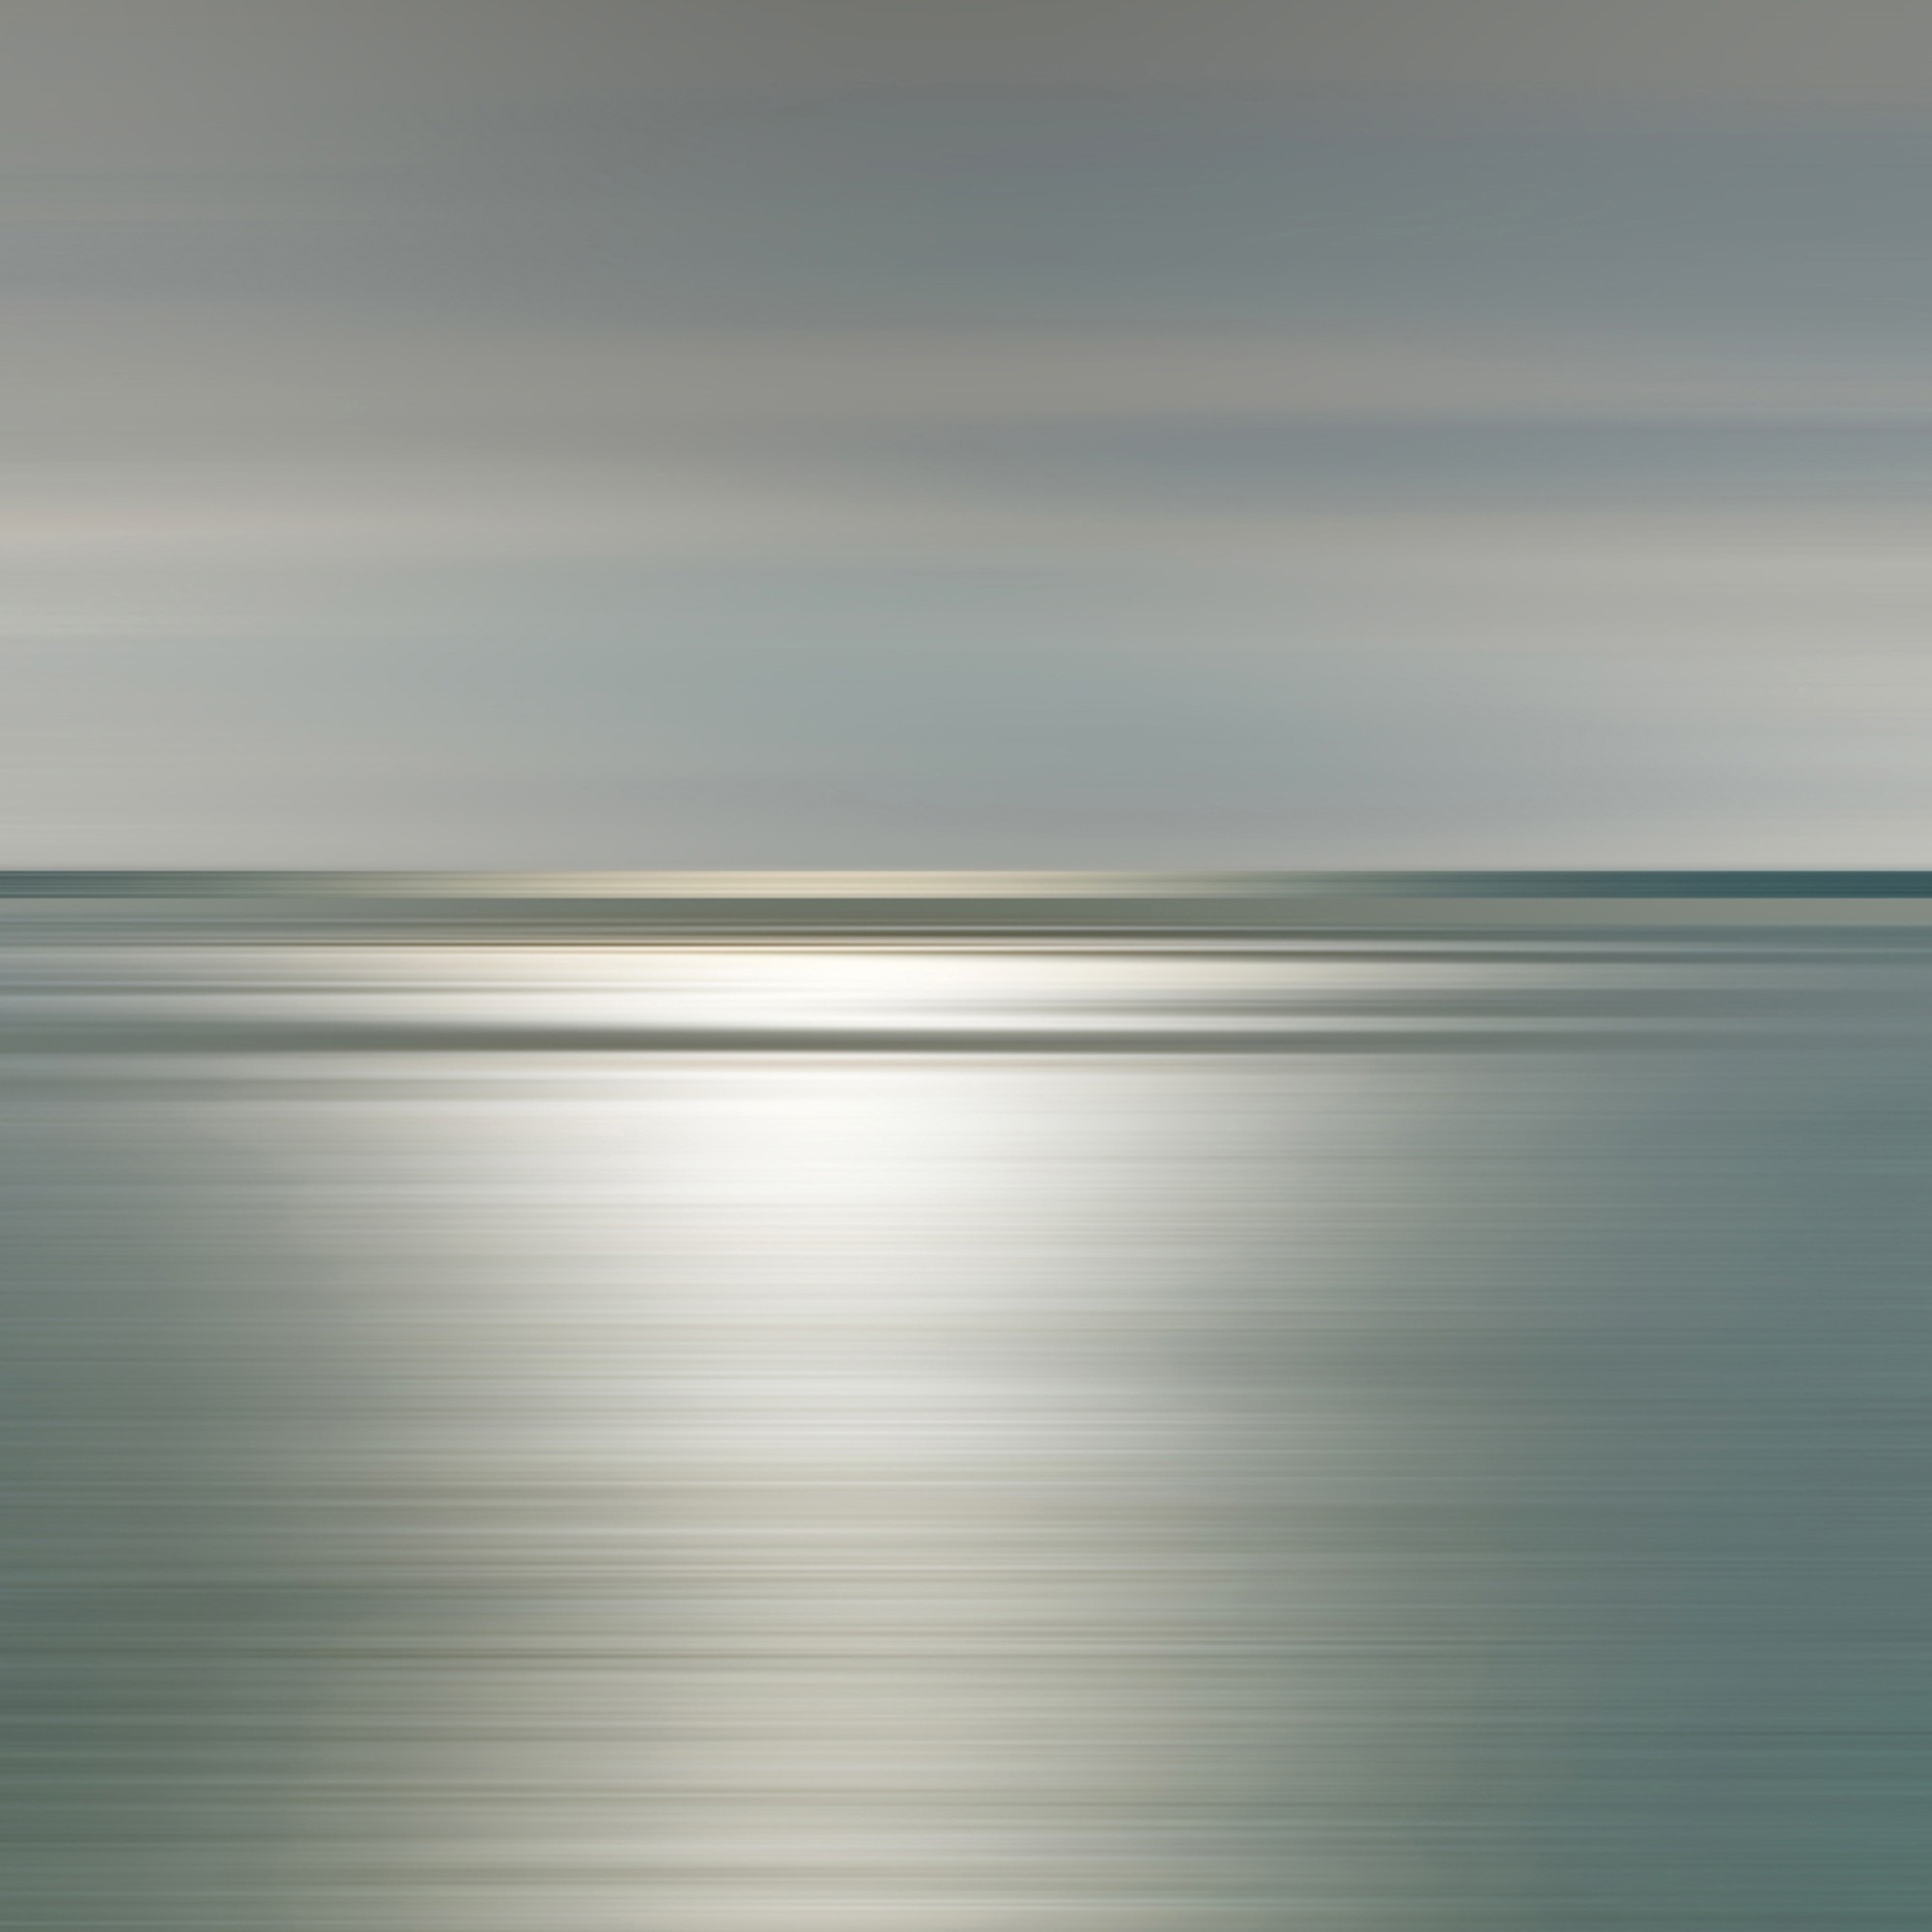 Light and Sea Silver Lounge, 2019, photograph on plexiglass, 40 x 40 in, edition of 10, $7,500 (other sizes available, priced accordingly)